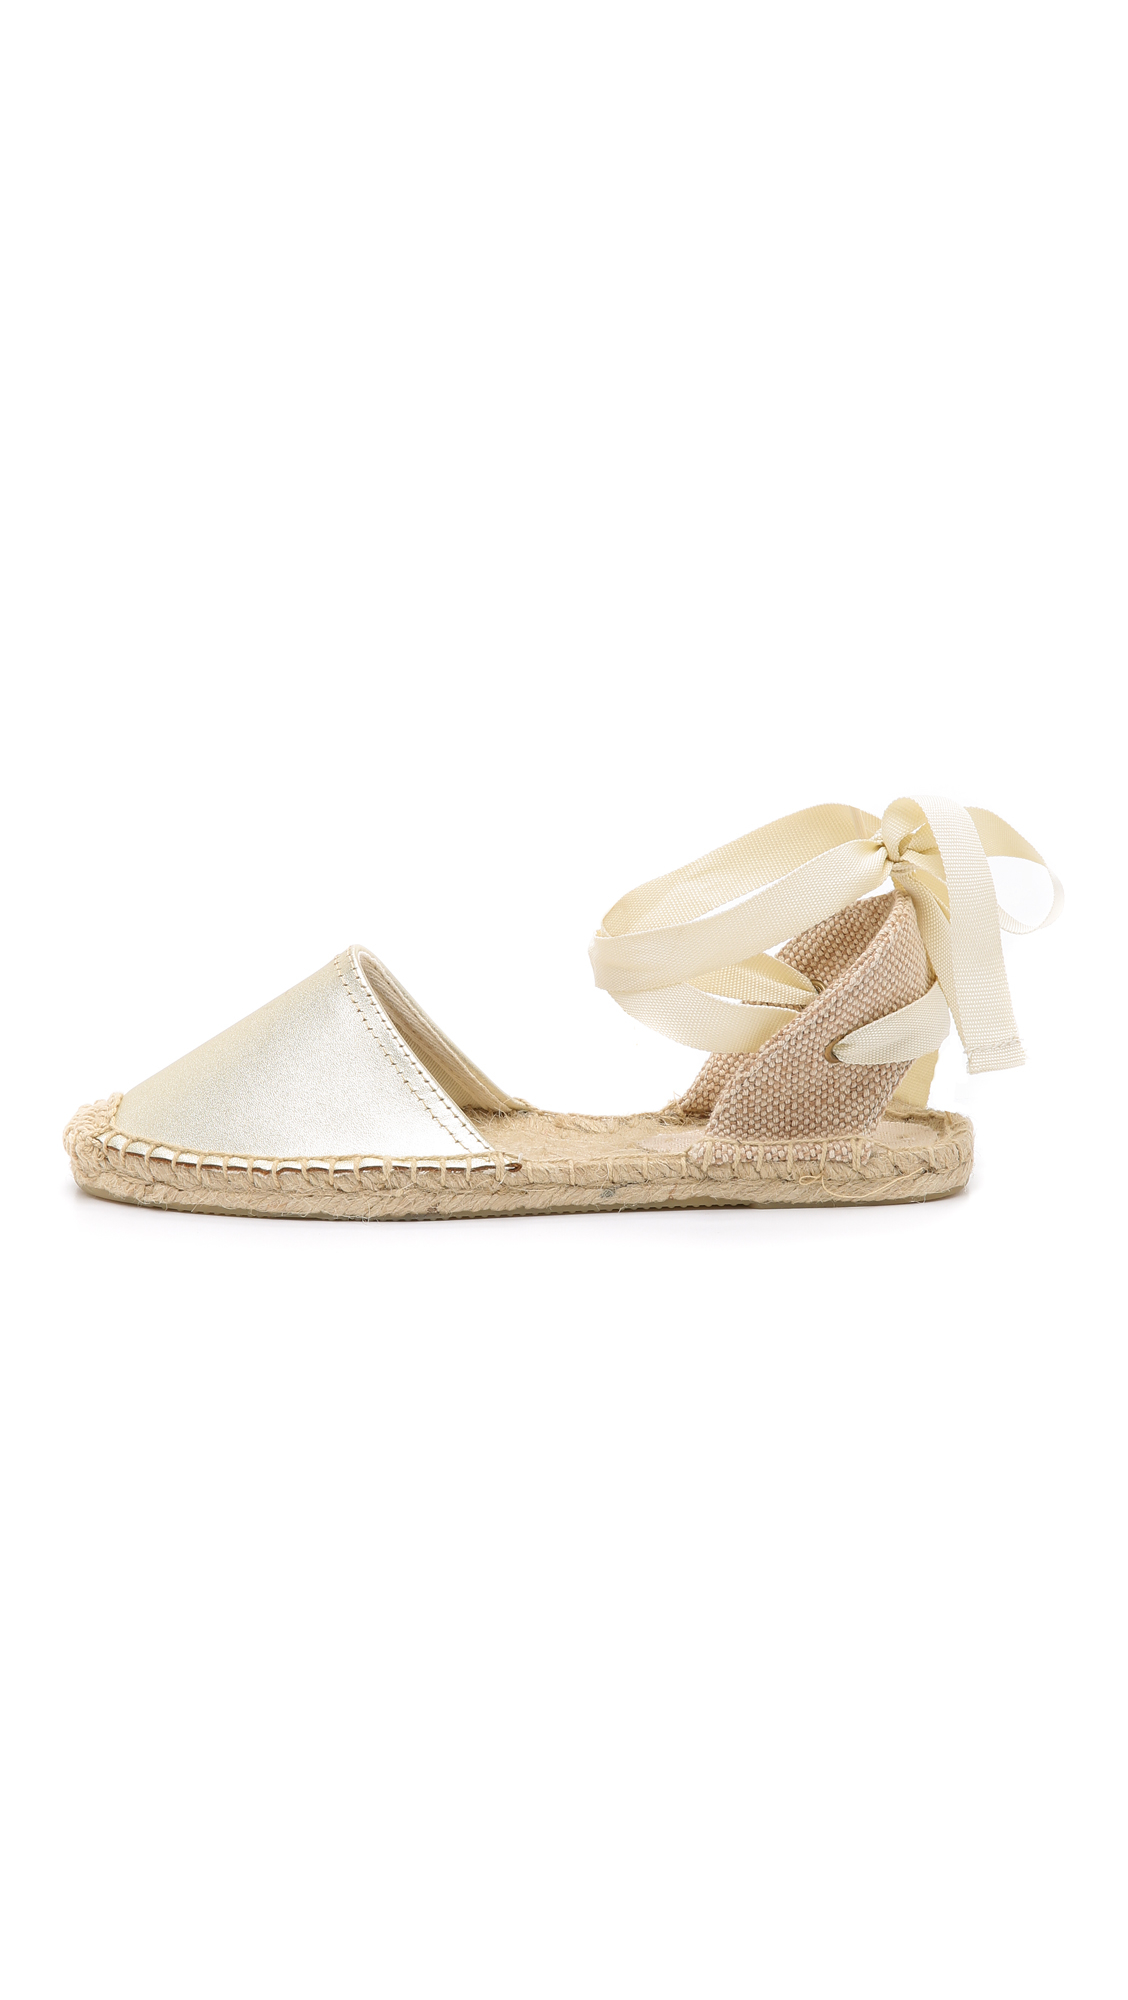 60551b76fcf1d Lyst - Soludos Leather Espadrille Sandals in Natural